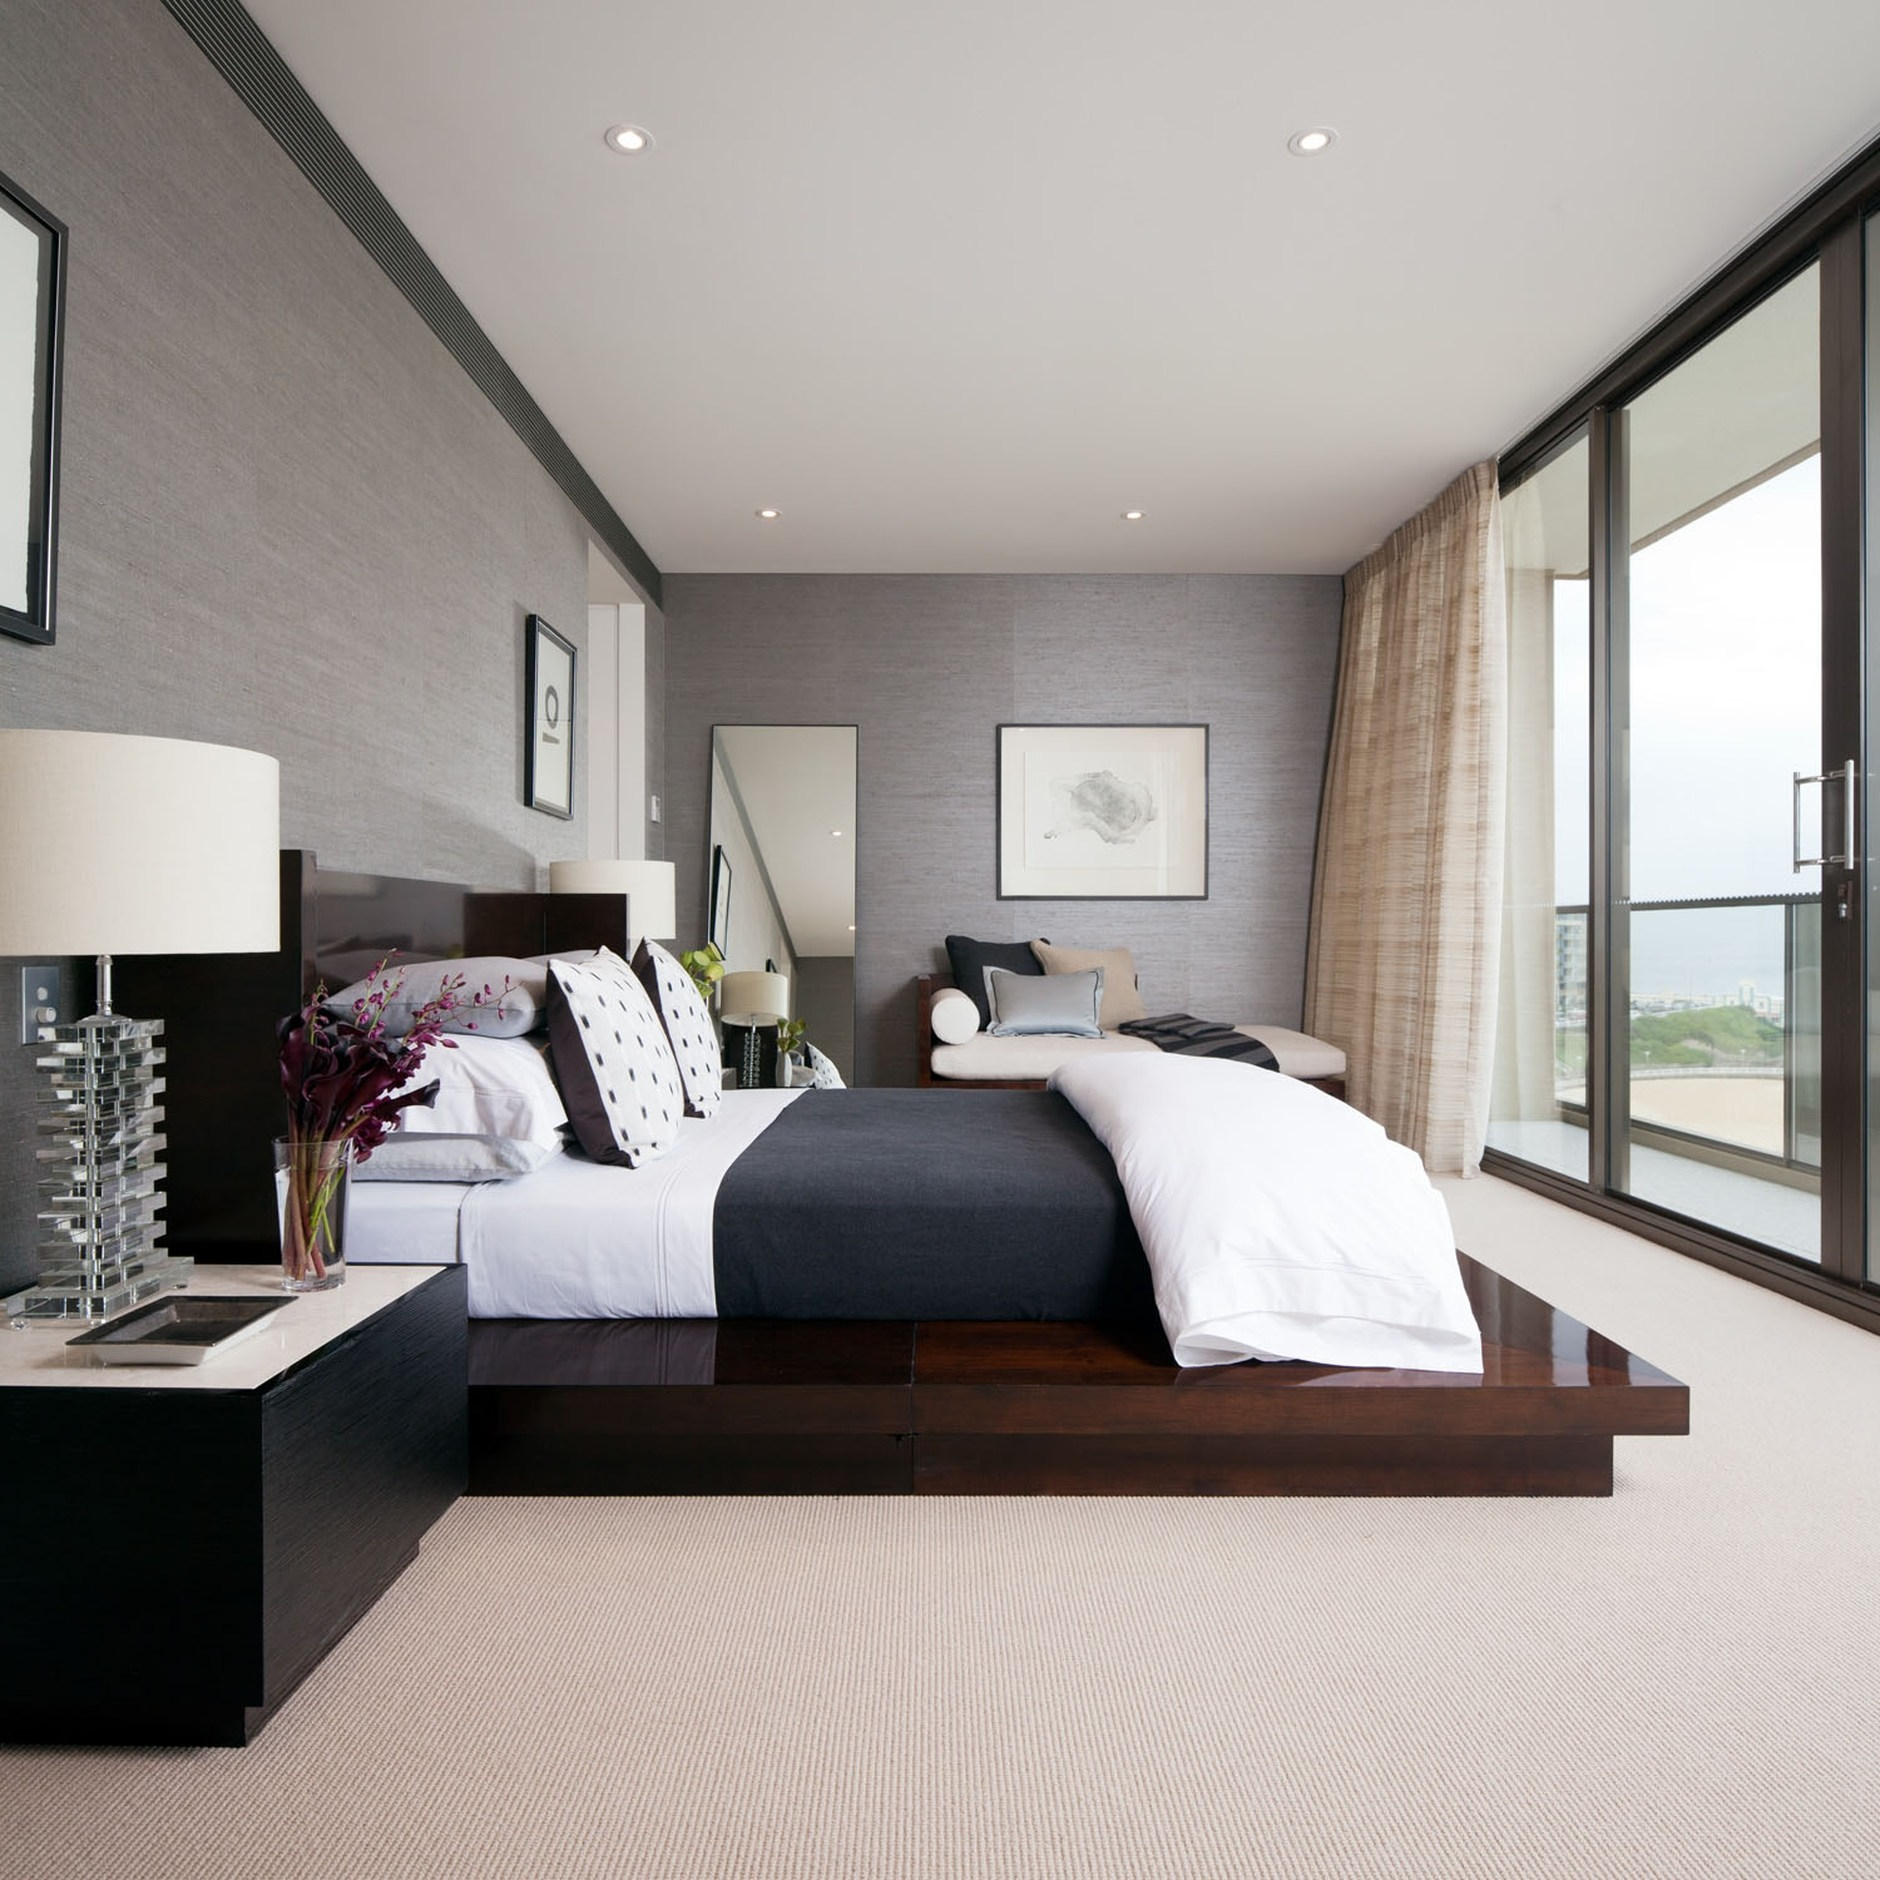 Beautiful Houses The Royal Penthouse Ii In Australia: Royal Penthouse II By Coco Republic Interior Design